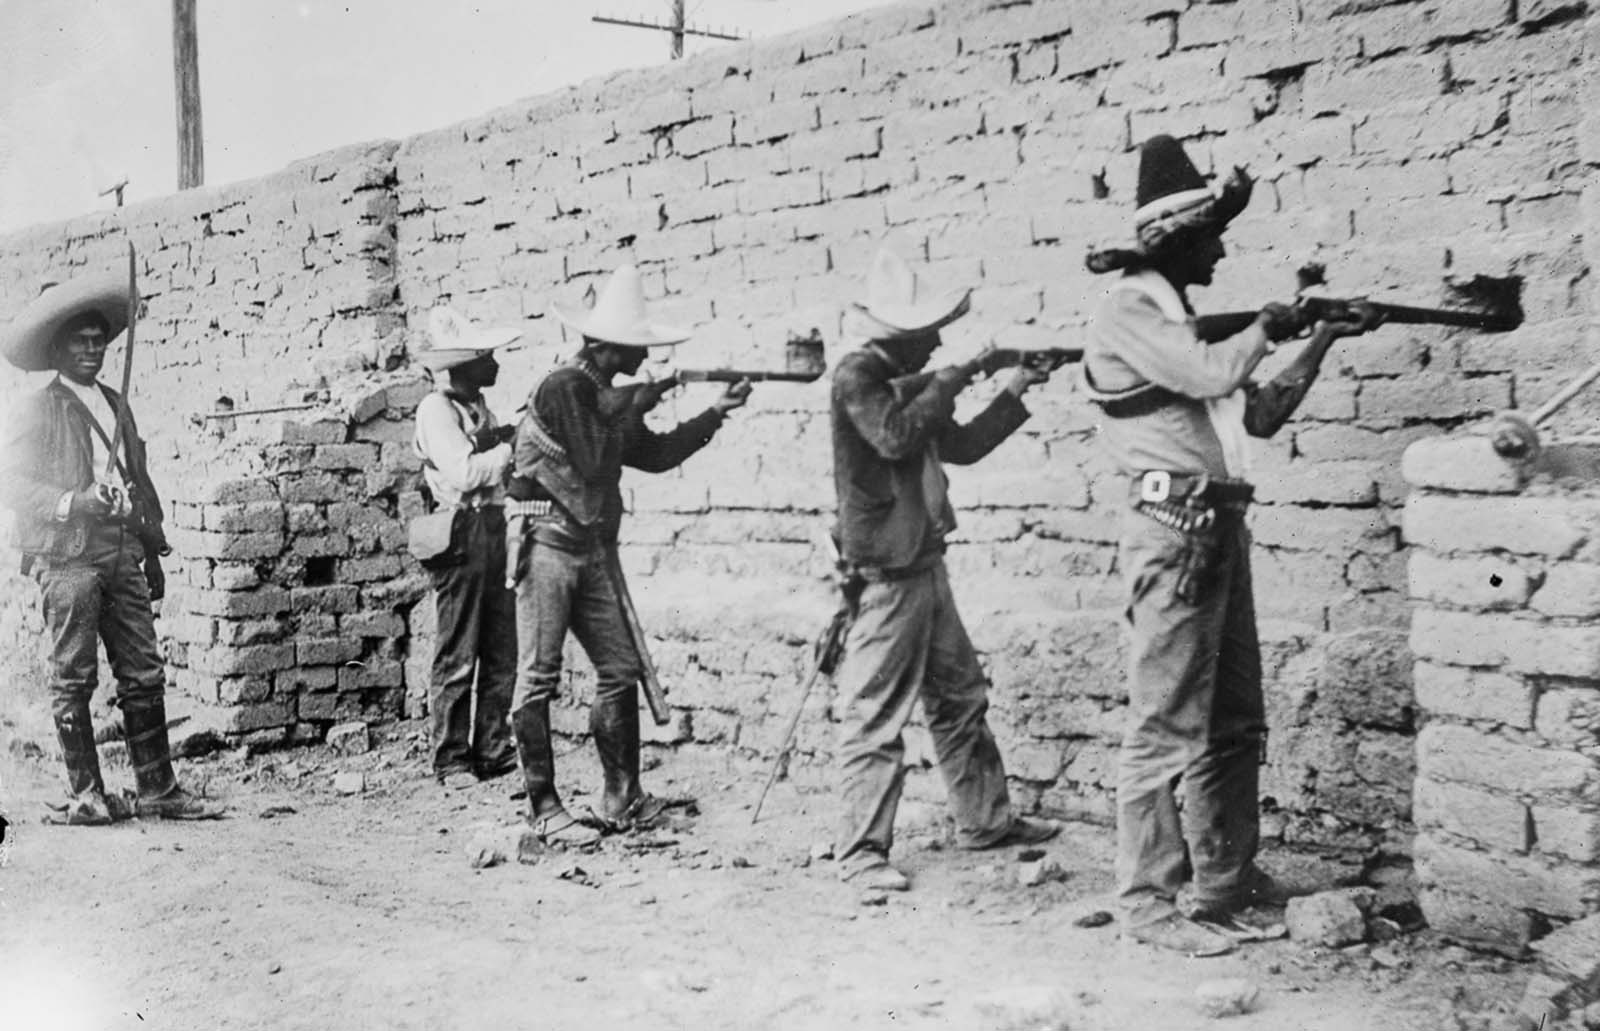 Rebels take aim from a fortified position in Ciudad Juárez.